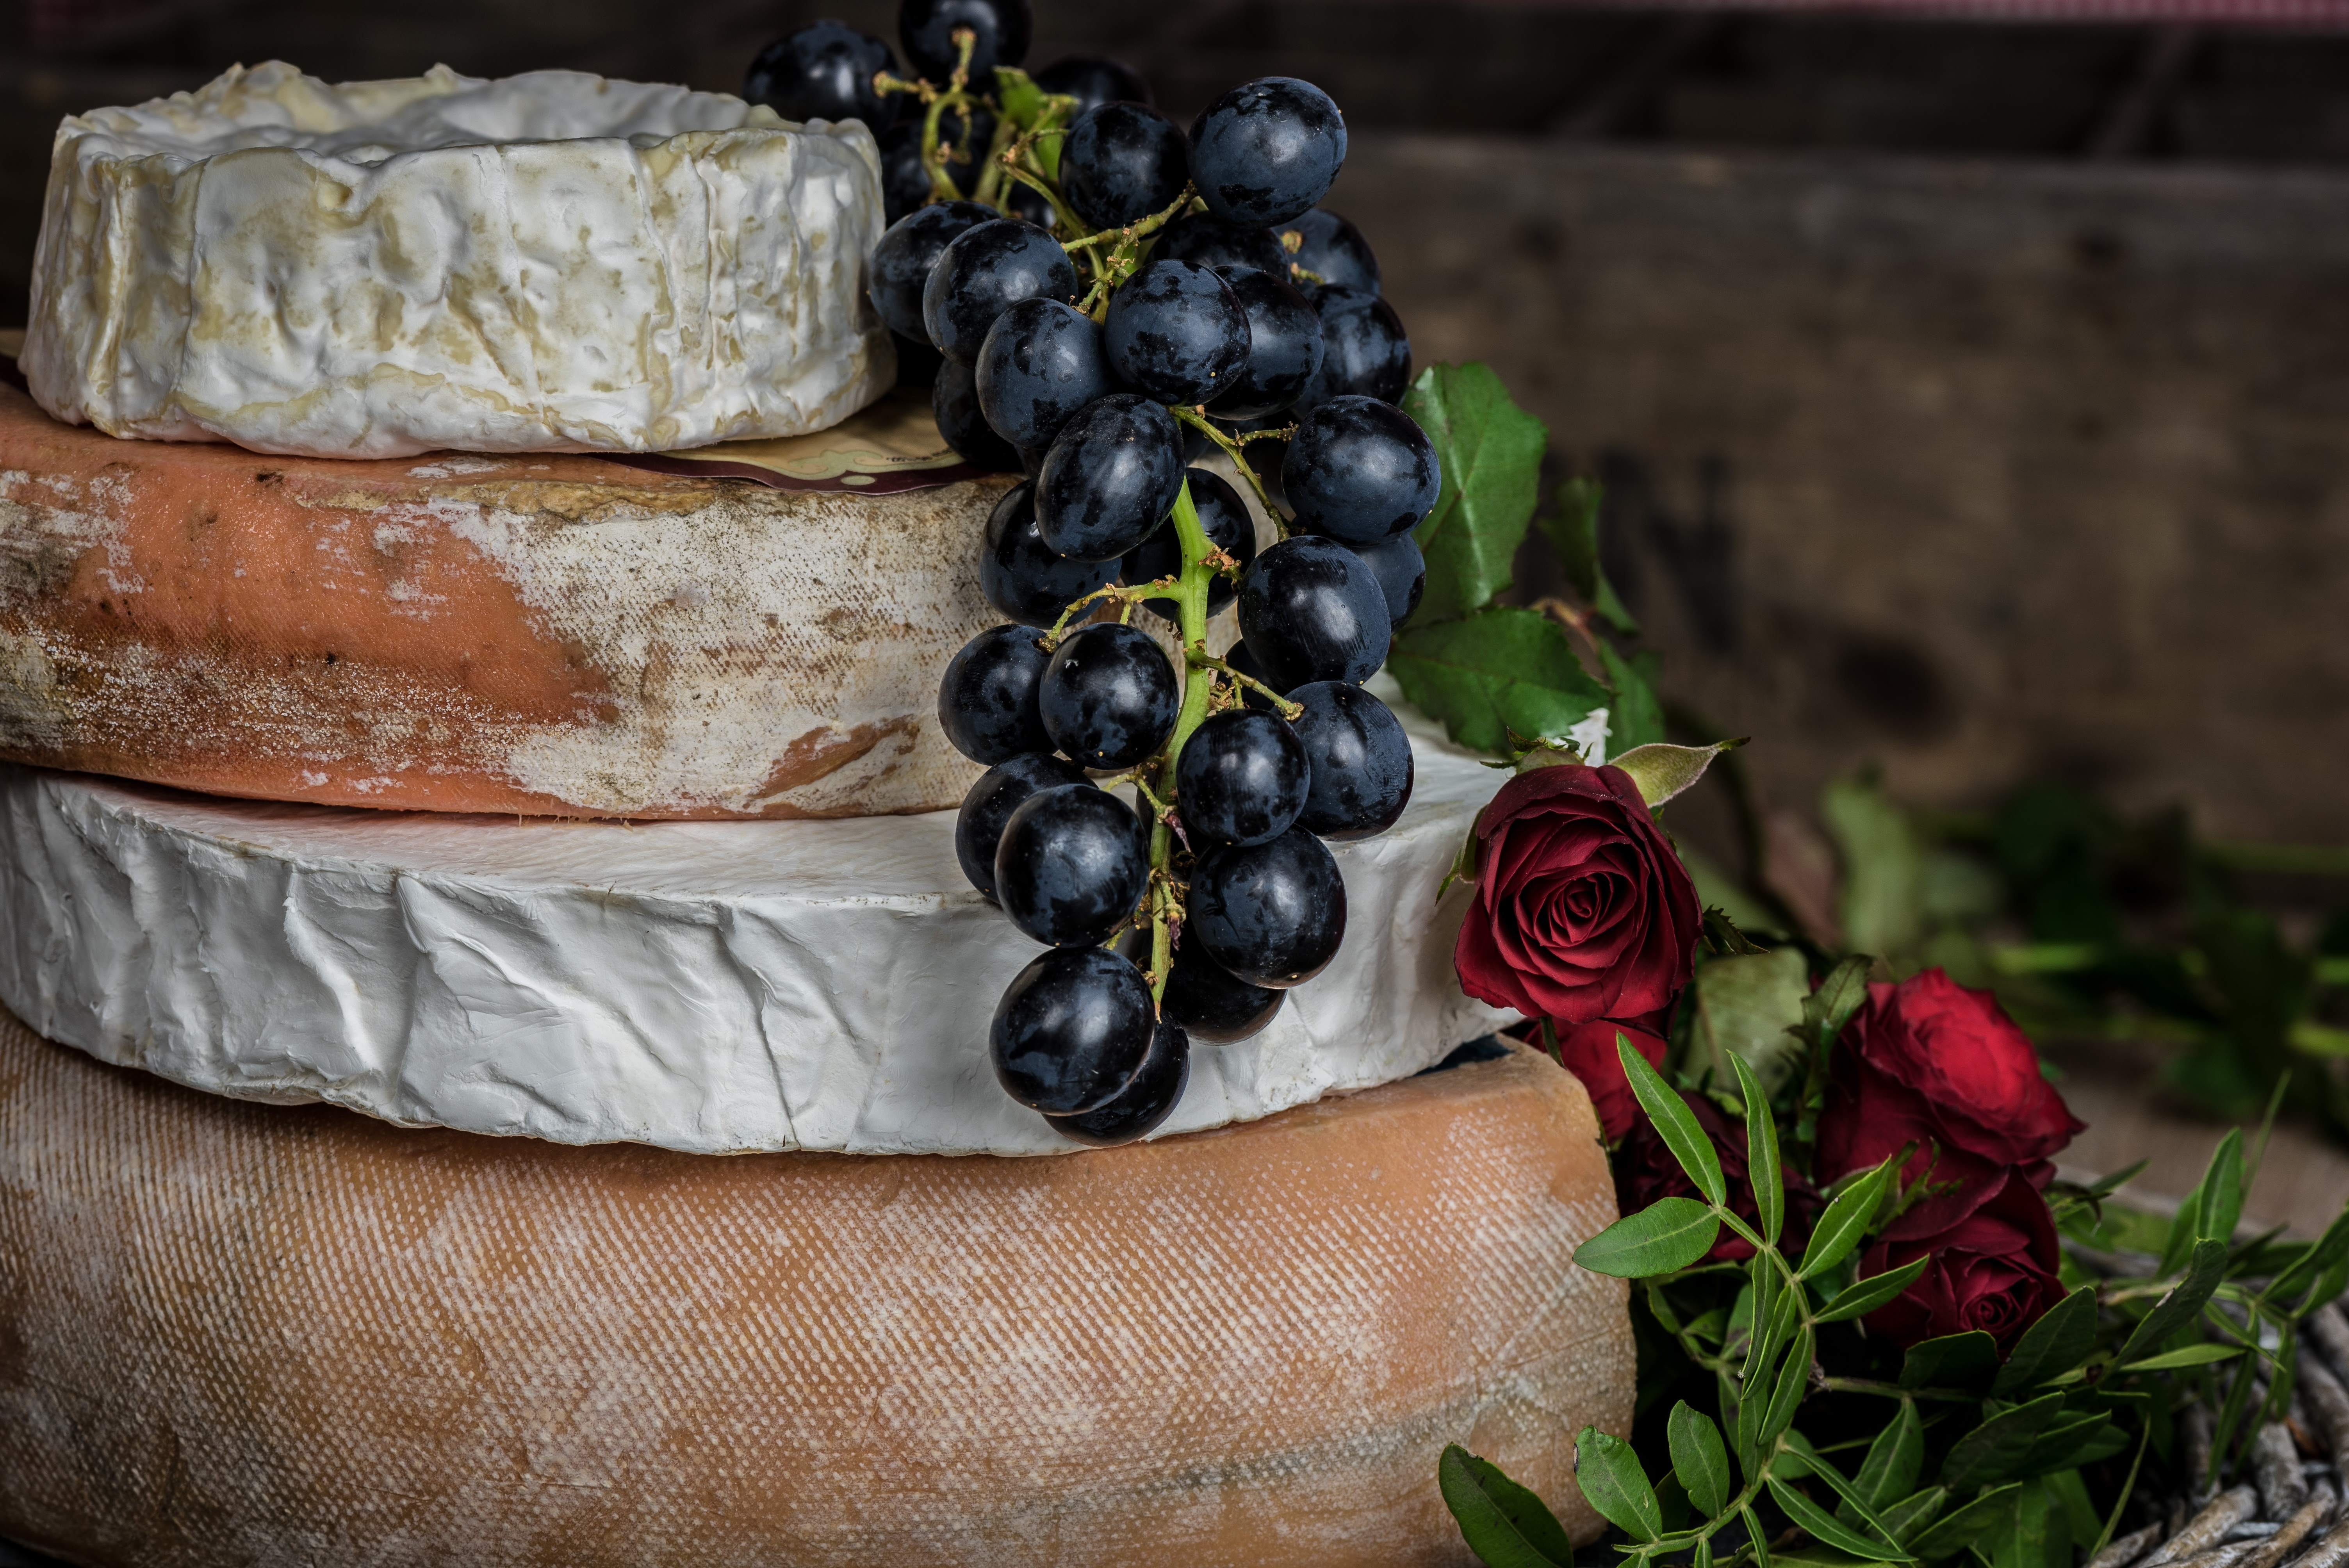 78109 download wallpaper Food, Cheese, Grapes, Rose Flower, Rose screensavers and pictures for free